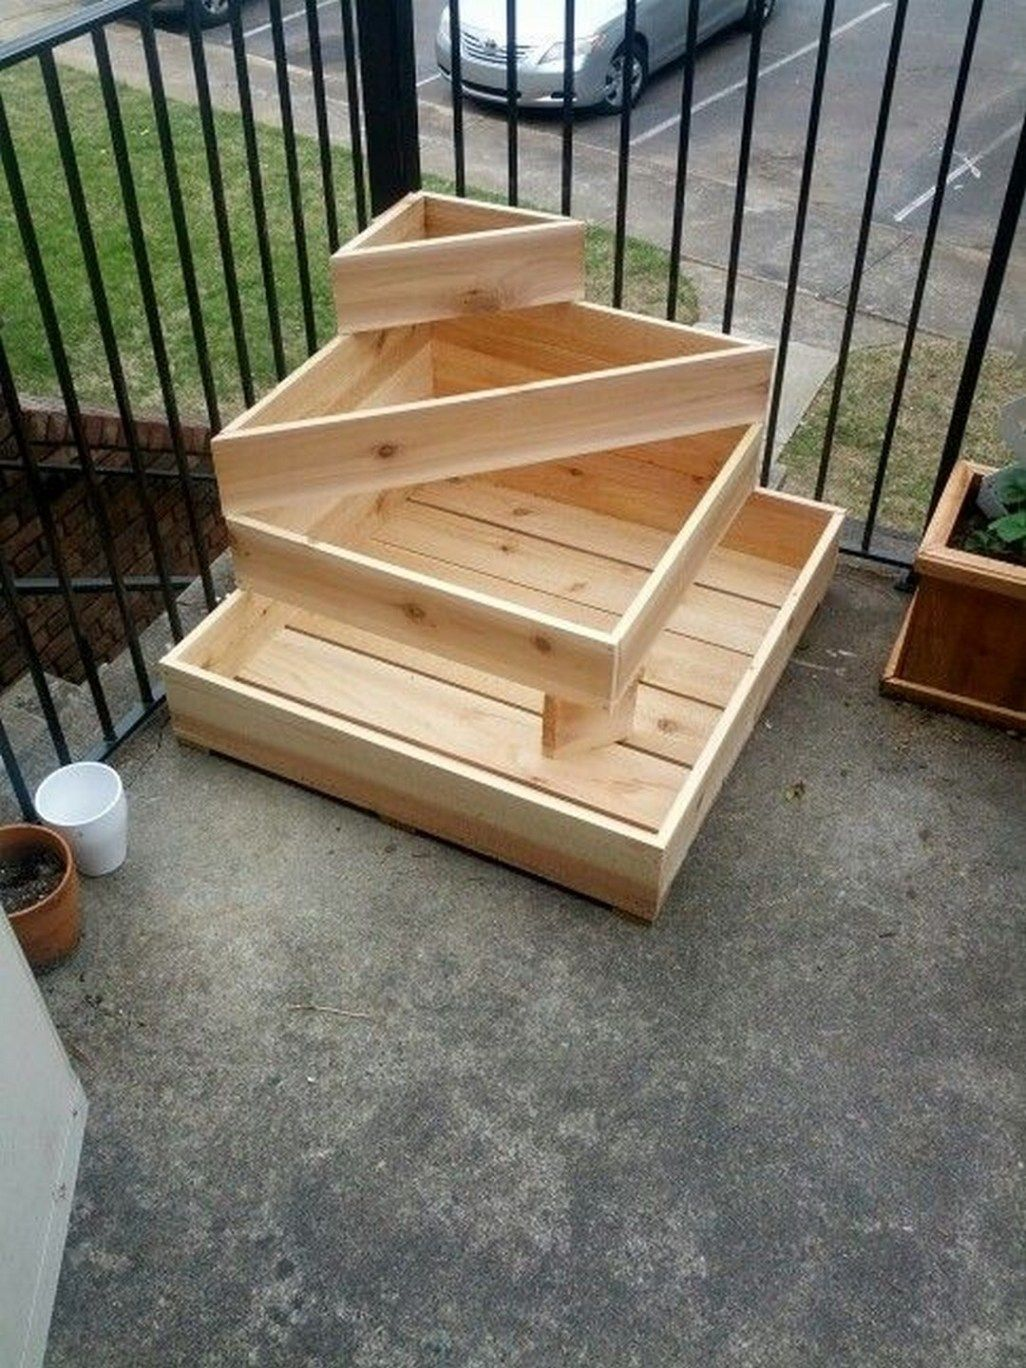 Diy Rustic Wood Planter Box Ideas For Your Amazing Garden 22 Wood Planter Box Wood Planters Garden Projects